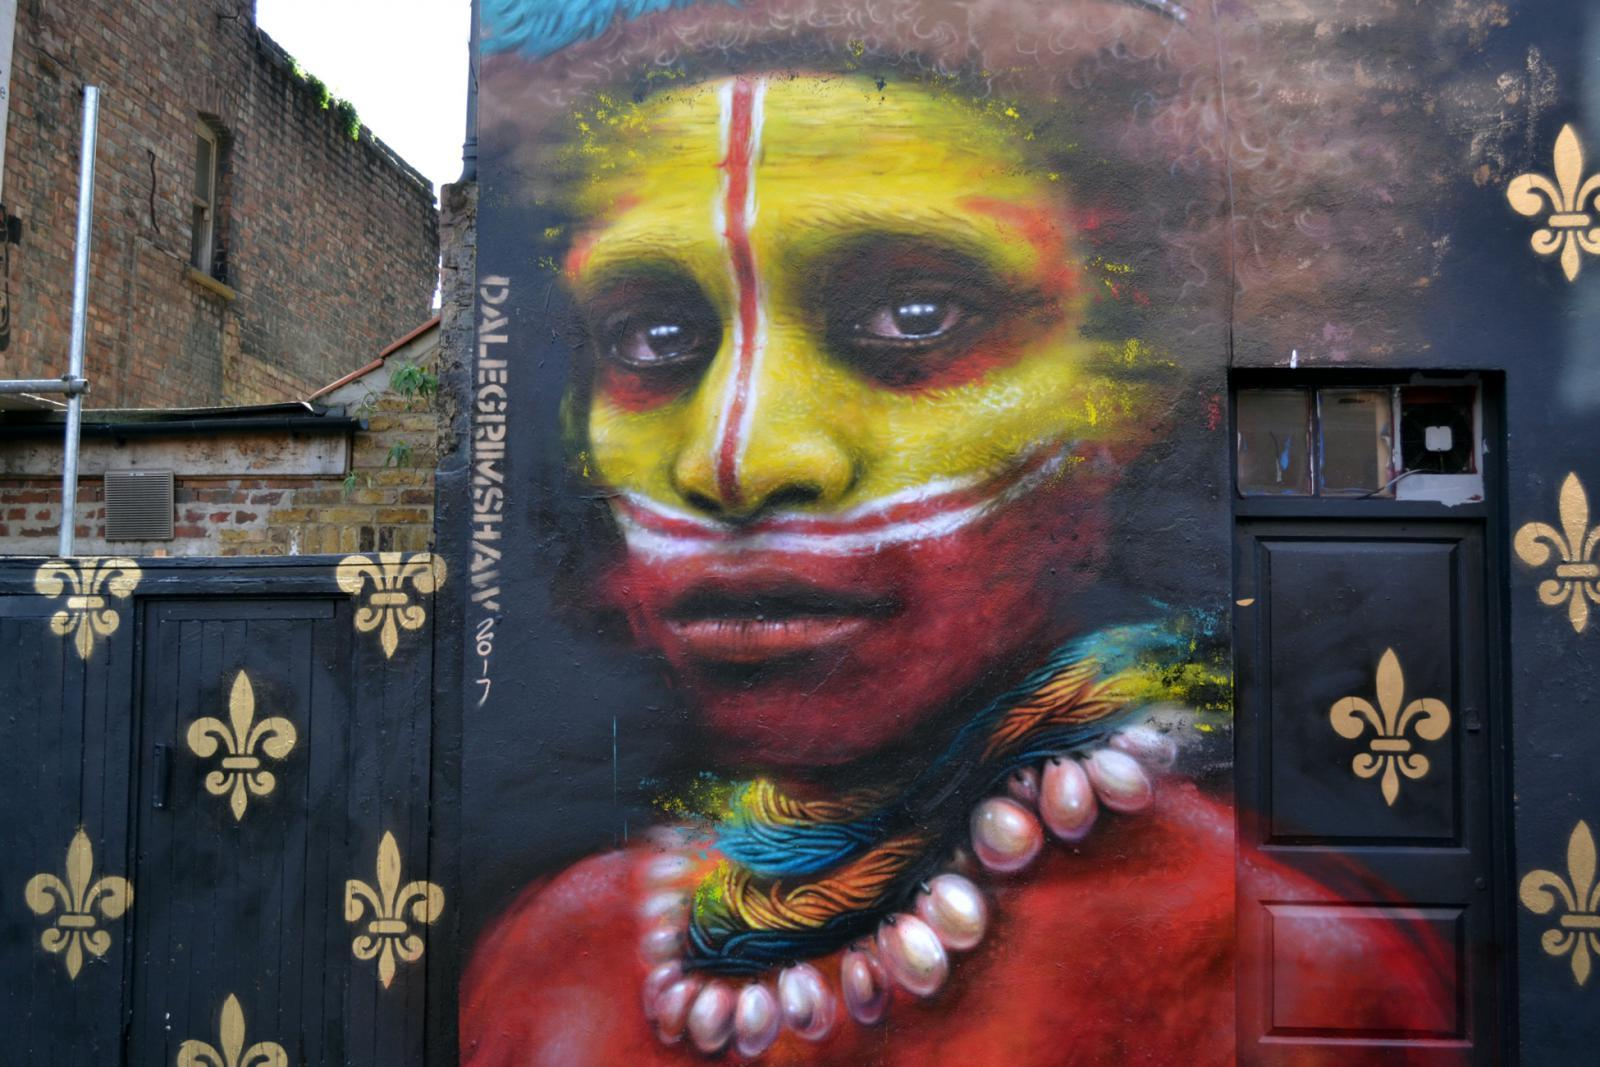 Streetart in der Brick Lane in London